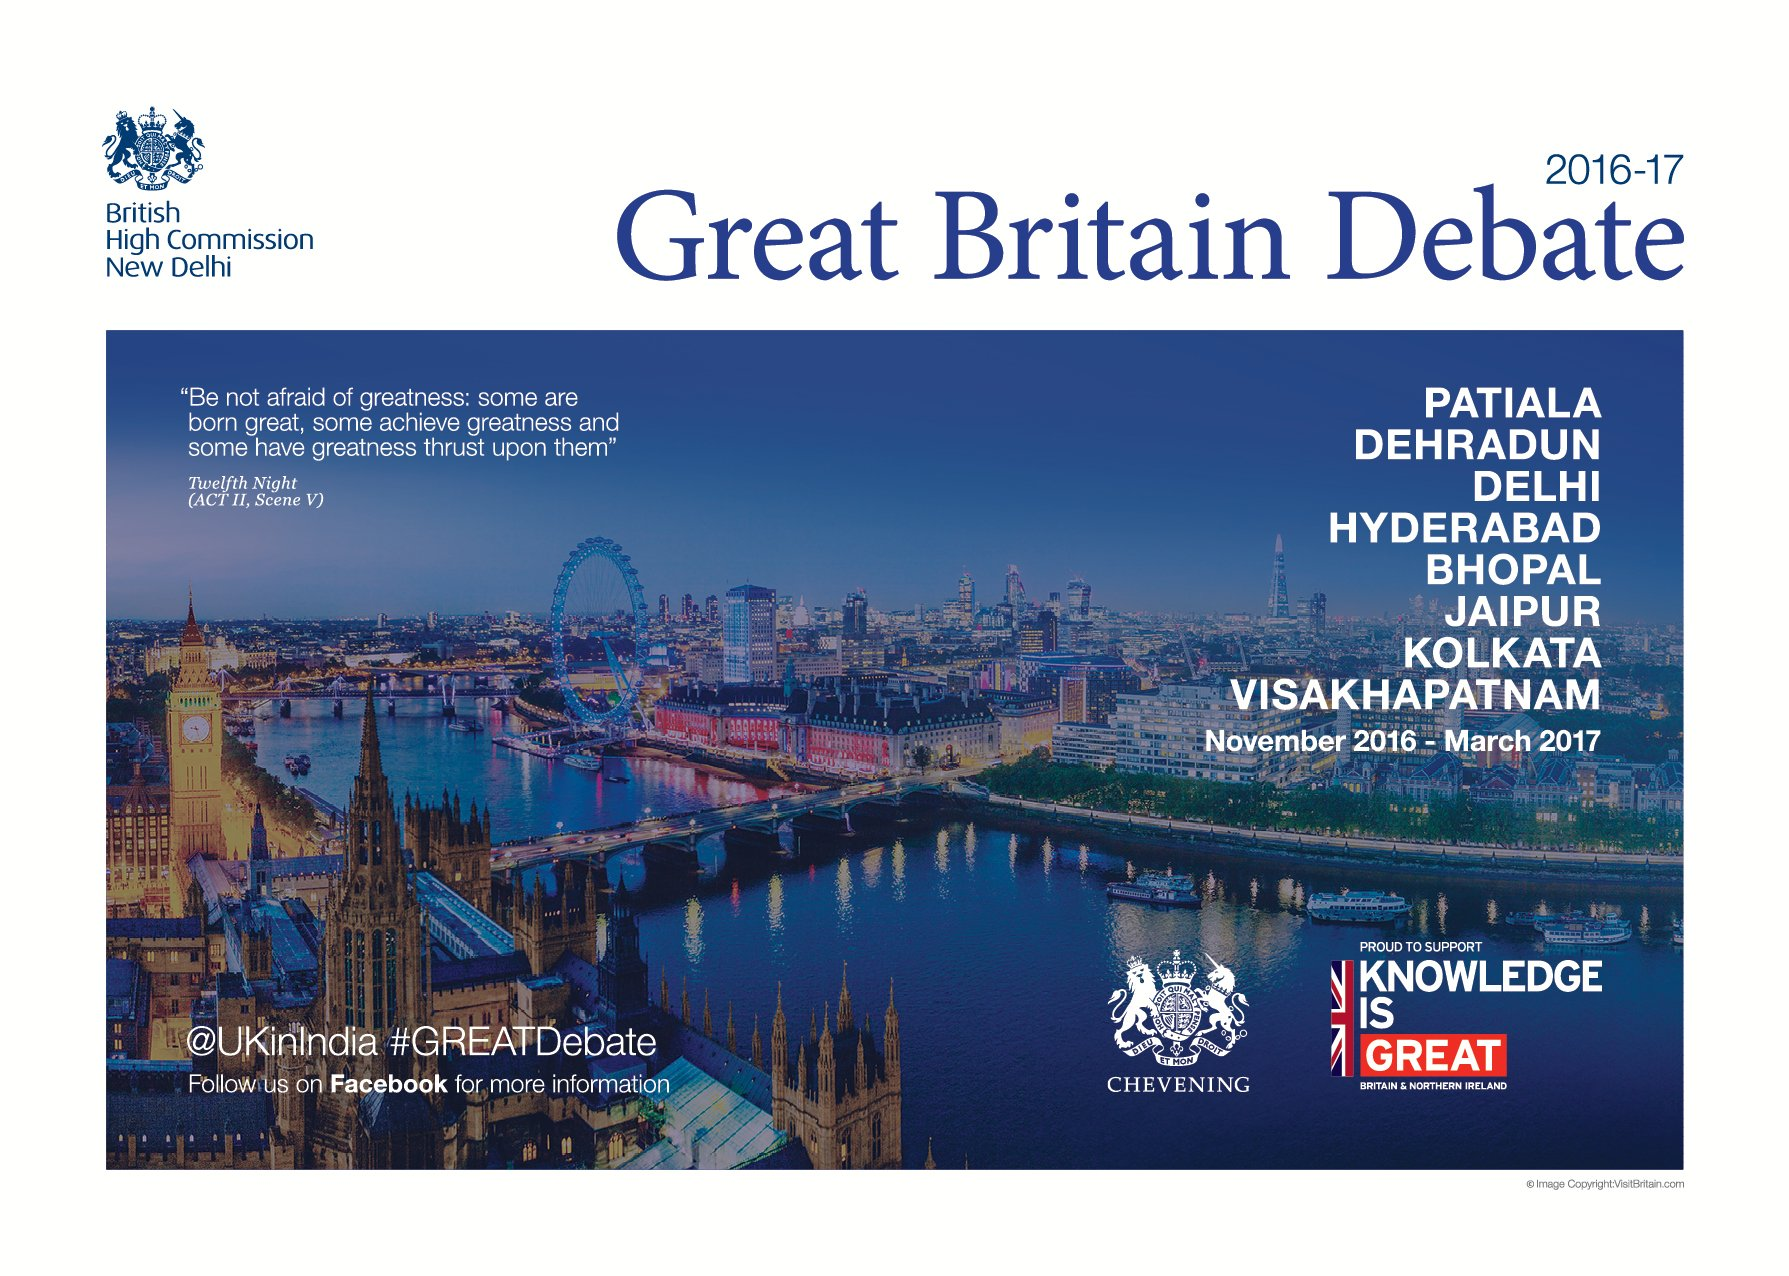 Thumbnail for The GREAT Britain Debate 2016-17